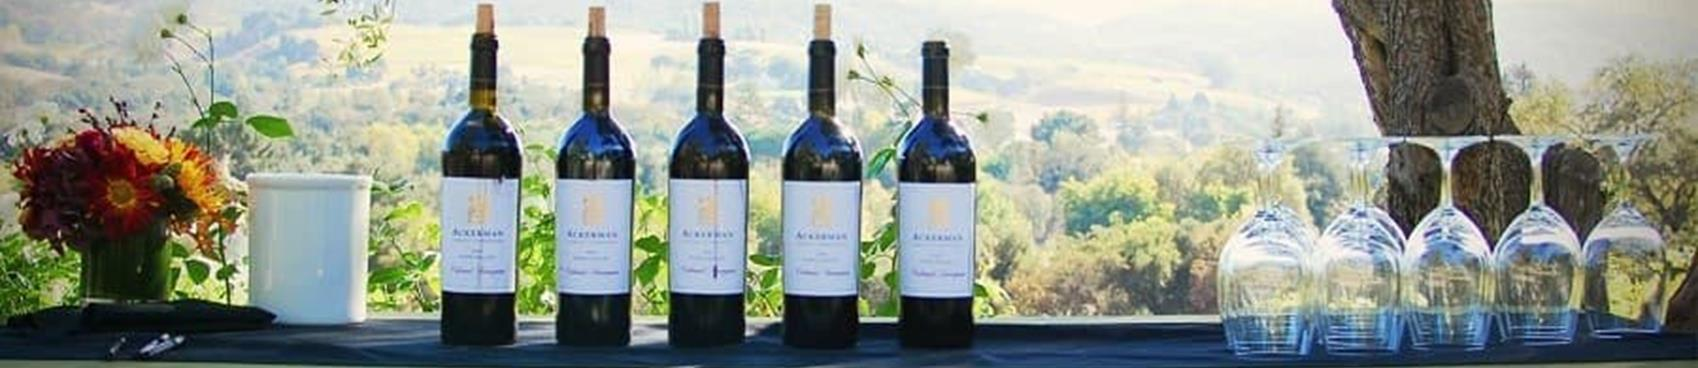 A image of Ackerman Family Vineyards